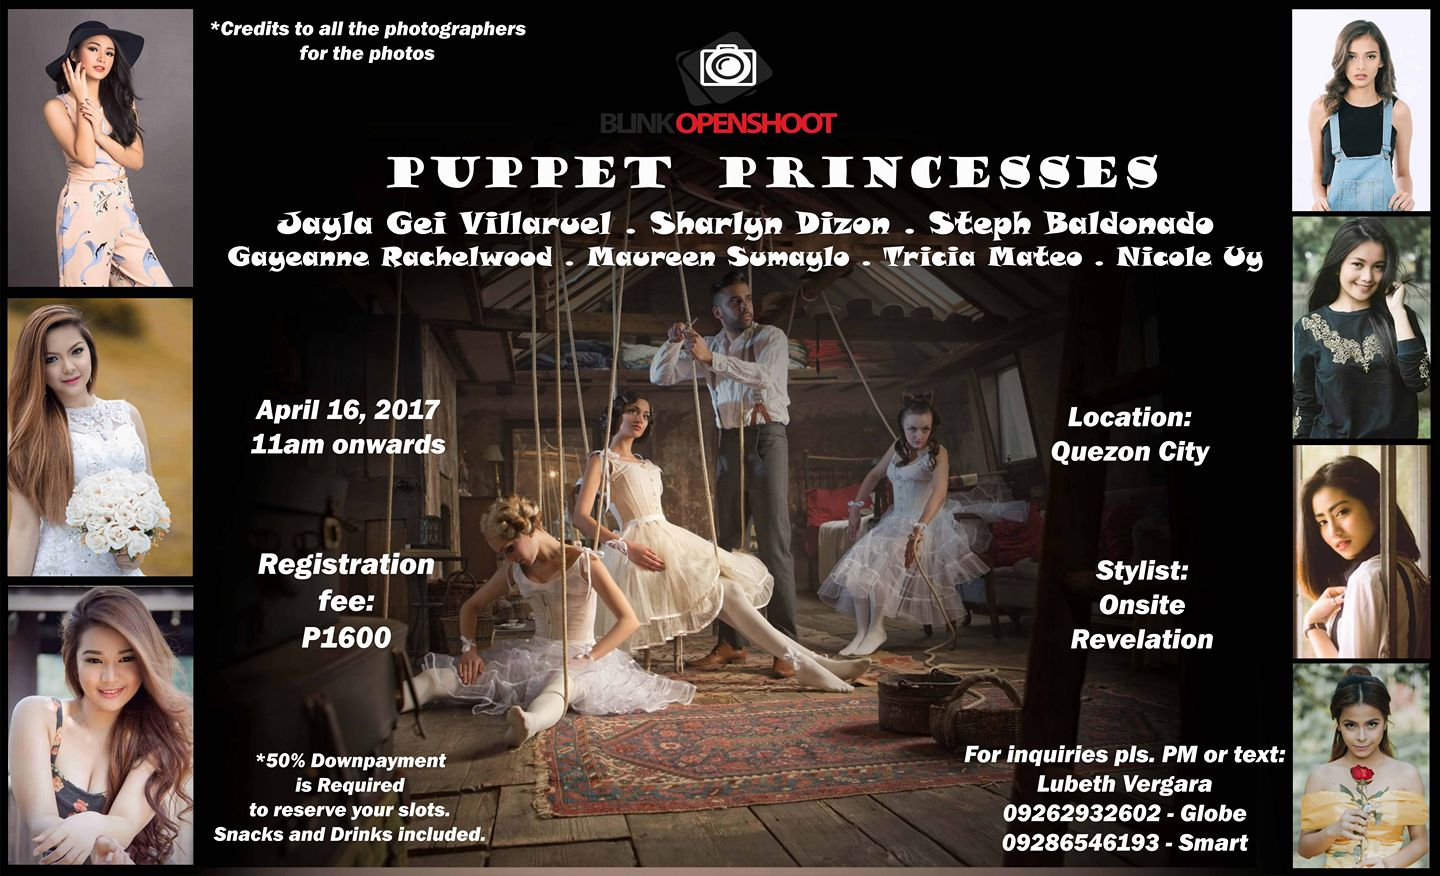 Lubeth Vergara‎Quezon City Photo Club Follow · 8 hrs · Blink Openshoot Puppet Princesses Models: Jayla Gei Villaruel Sharlyn Dizon Steph Baldonado Gayeanne Ruschel Hazlewood Maureen Desiree Reola Sumaylo Tricia Mateo Janine Nicole Uy Location: Quezon City (Indoor) When: April 16, 2017 11am onwards Registration fee: P1600 With snacks and drinks *50% downpayment is REQUIRED to reserve a slot. For registration, please PM or text: Lubeth Vergara 09262932602 - Globe 09286546193 - Smart *credits to the photogs of each photo. — with Qel Hernz, Jayla Gei Villaruel, Ian Santiago, Steph Baldonado, Sharlyn Dizon, Ali-son Alegro, Curt de Guzman, Mark John Pachi, Leeroy Kudzai, John Avaricio Mascardo, Maureen Desiree Reola Sumaylo, Tricia Mateo, Janine Nicole Uy and Gayeanne Ruschel Hazlewood.